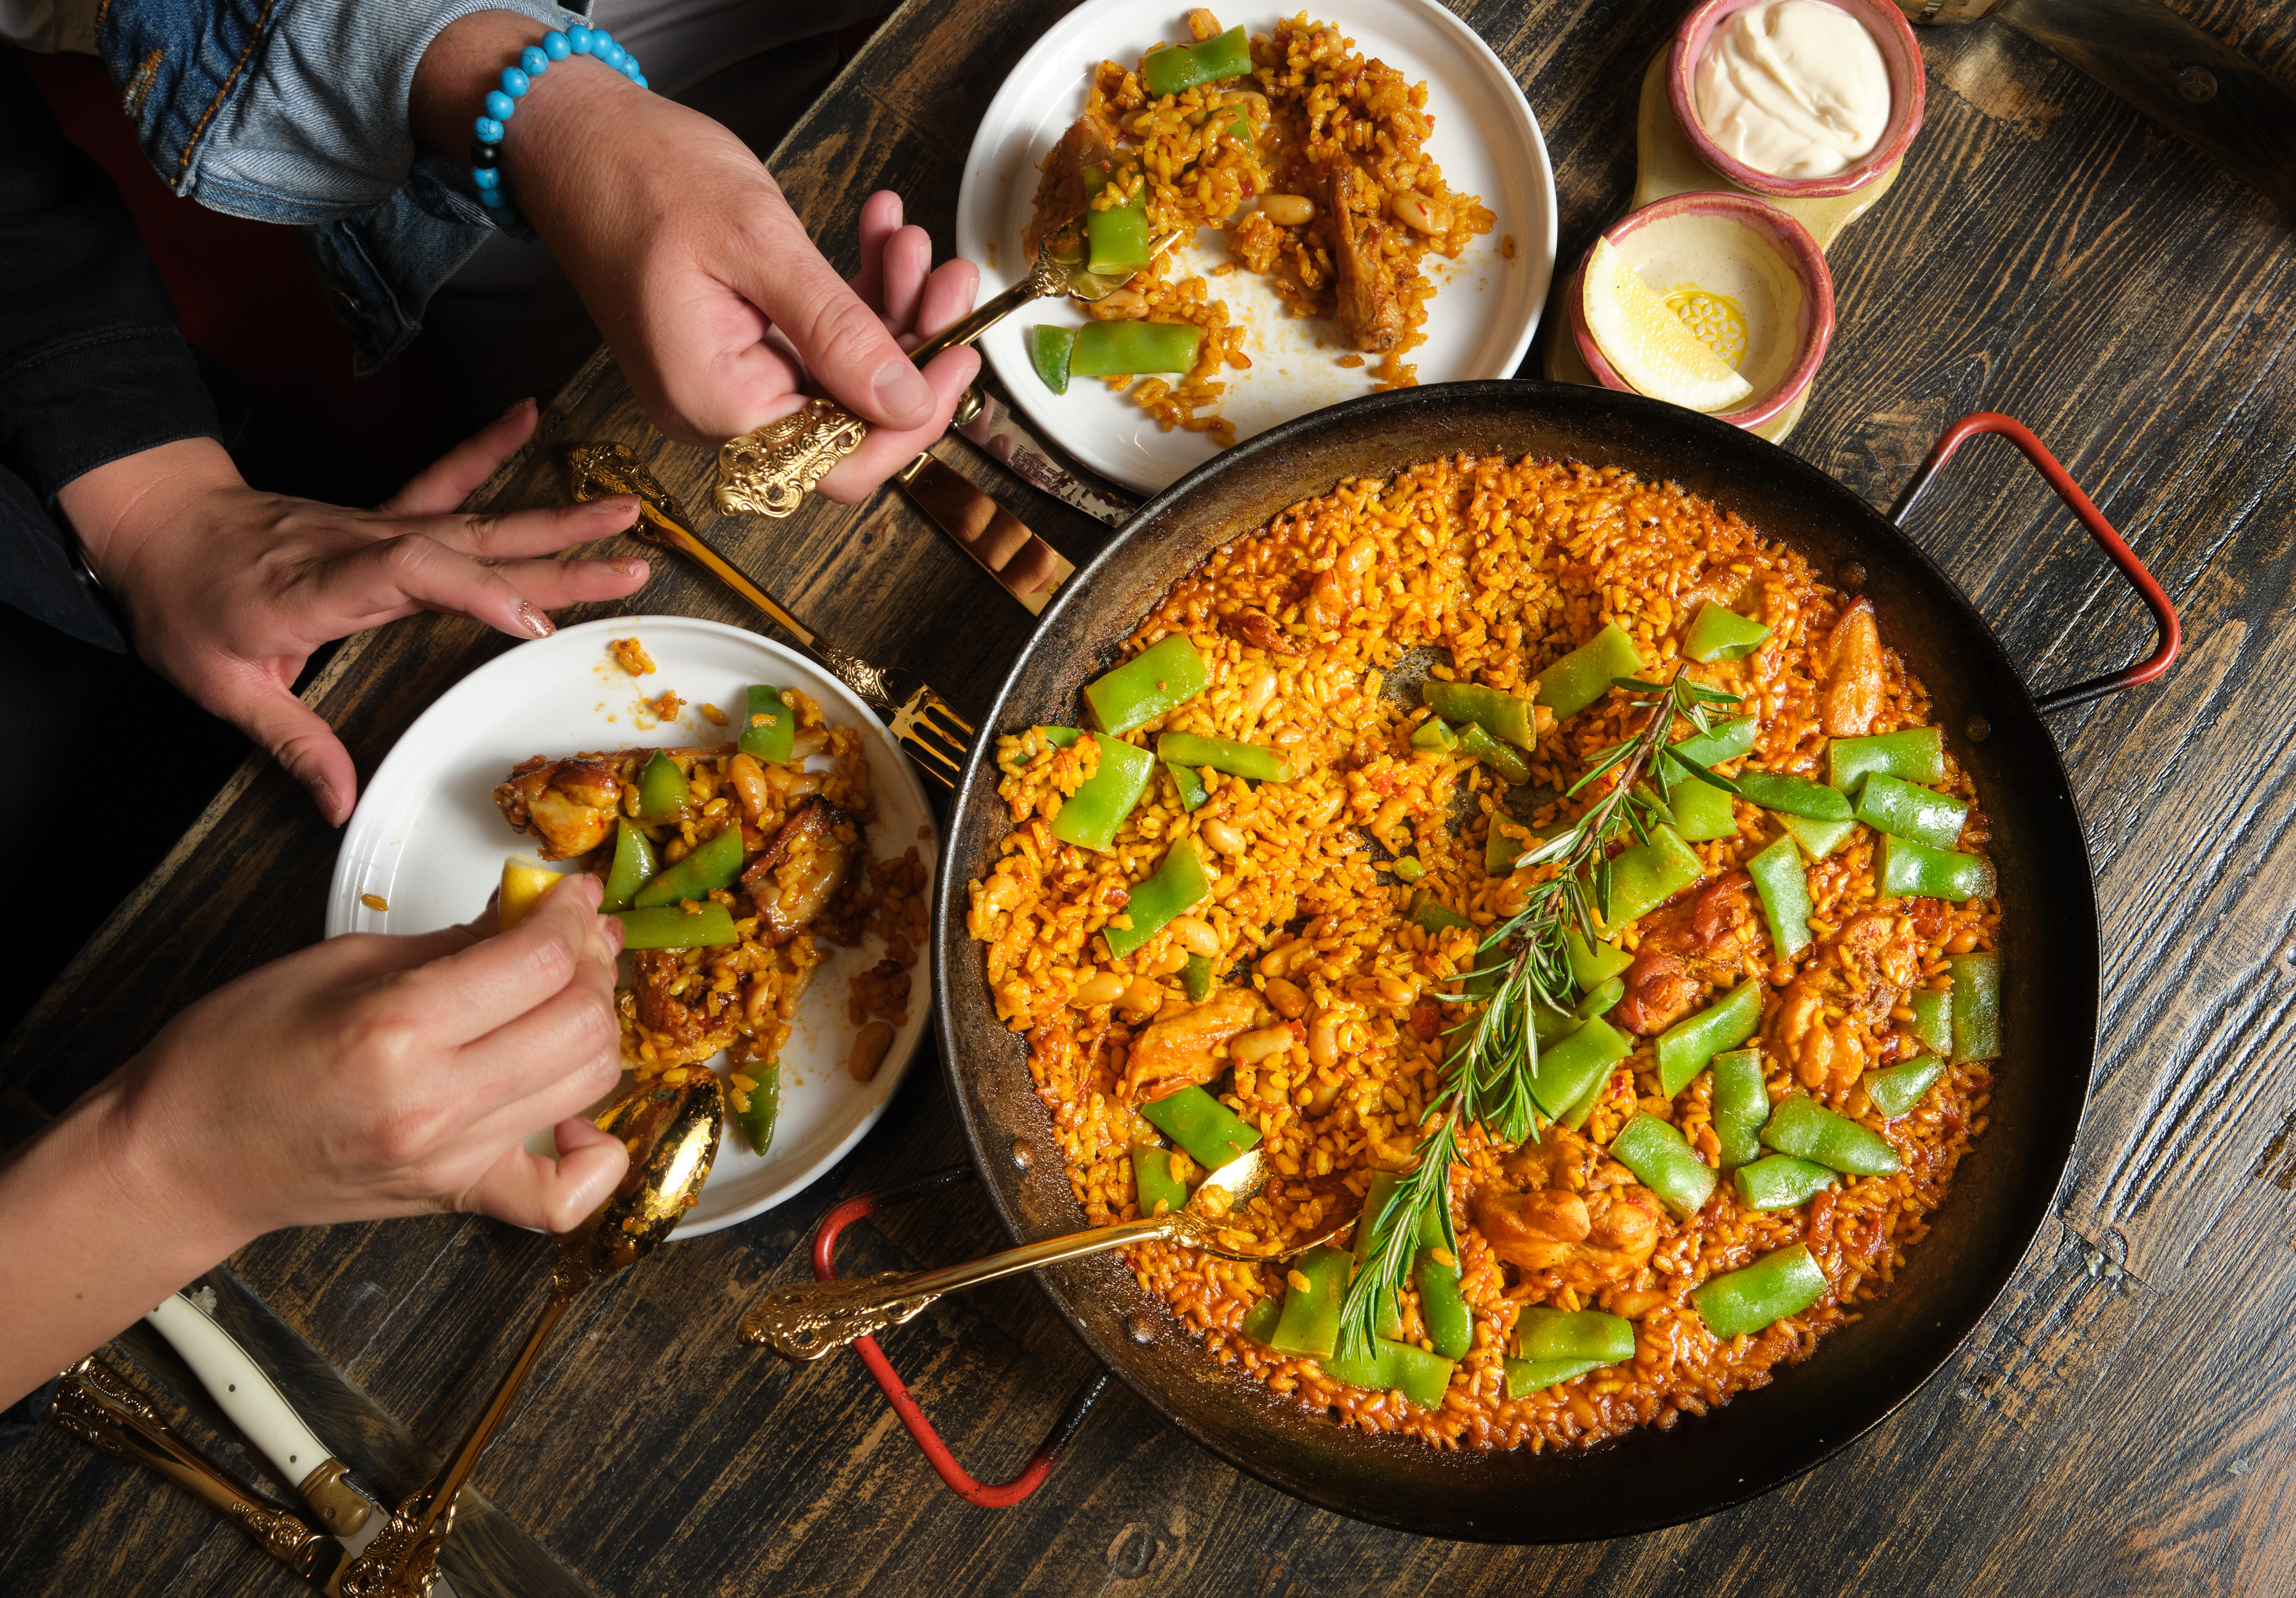 A pan of paella with hands in the photo